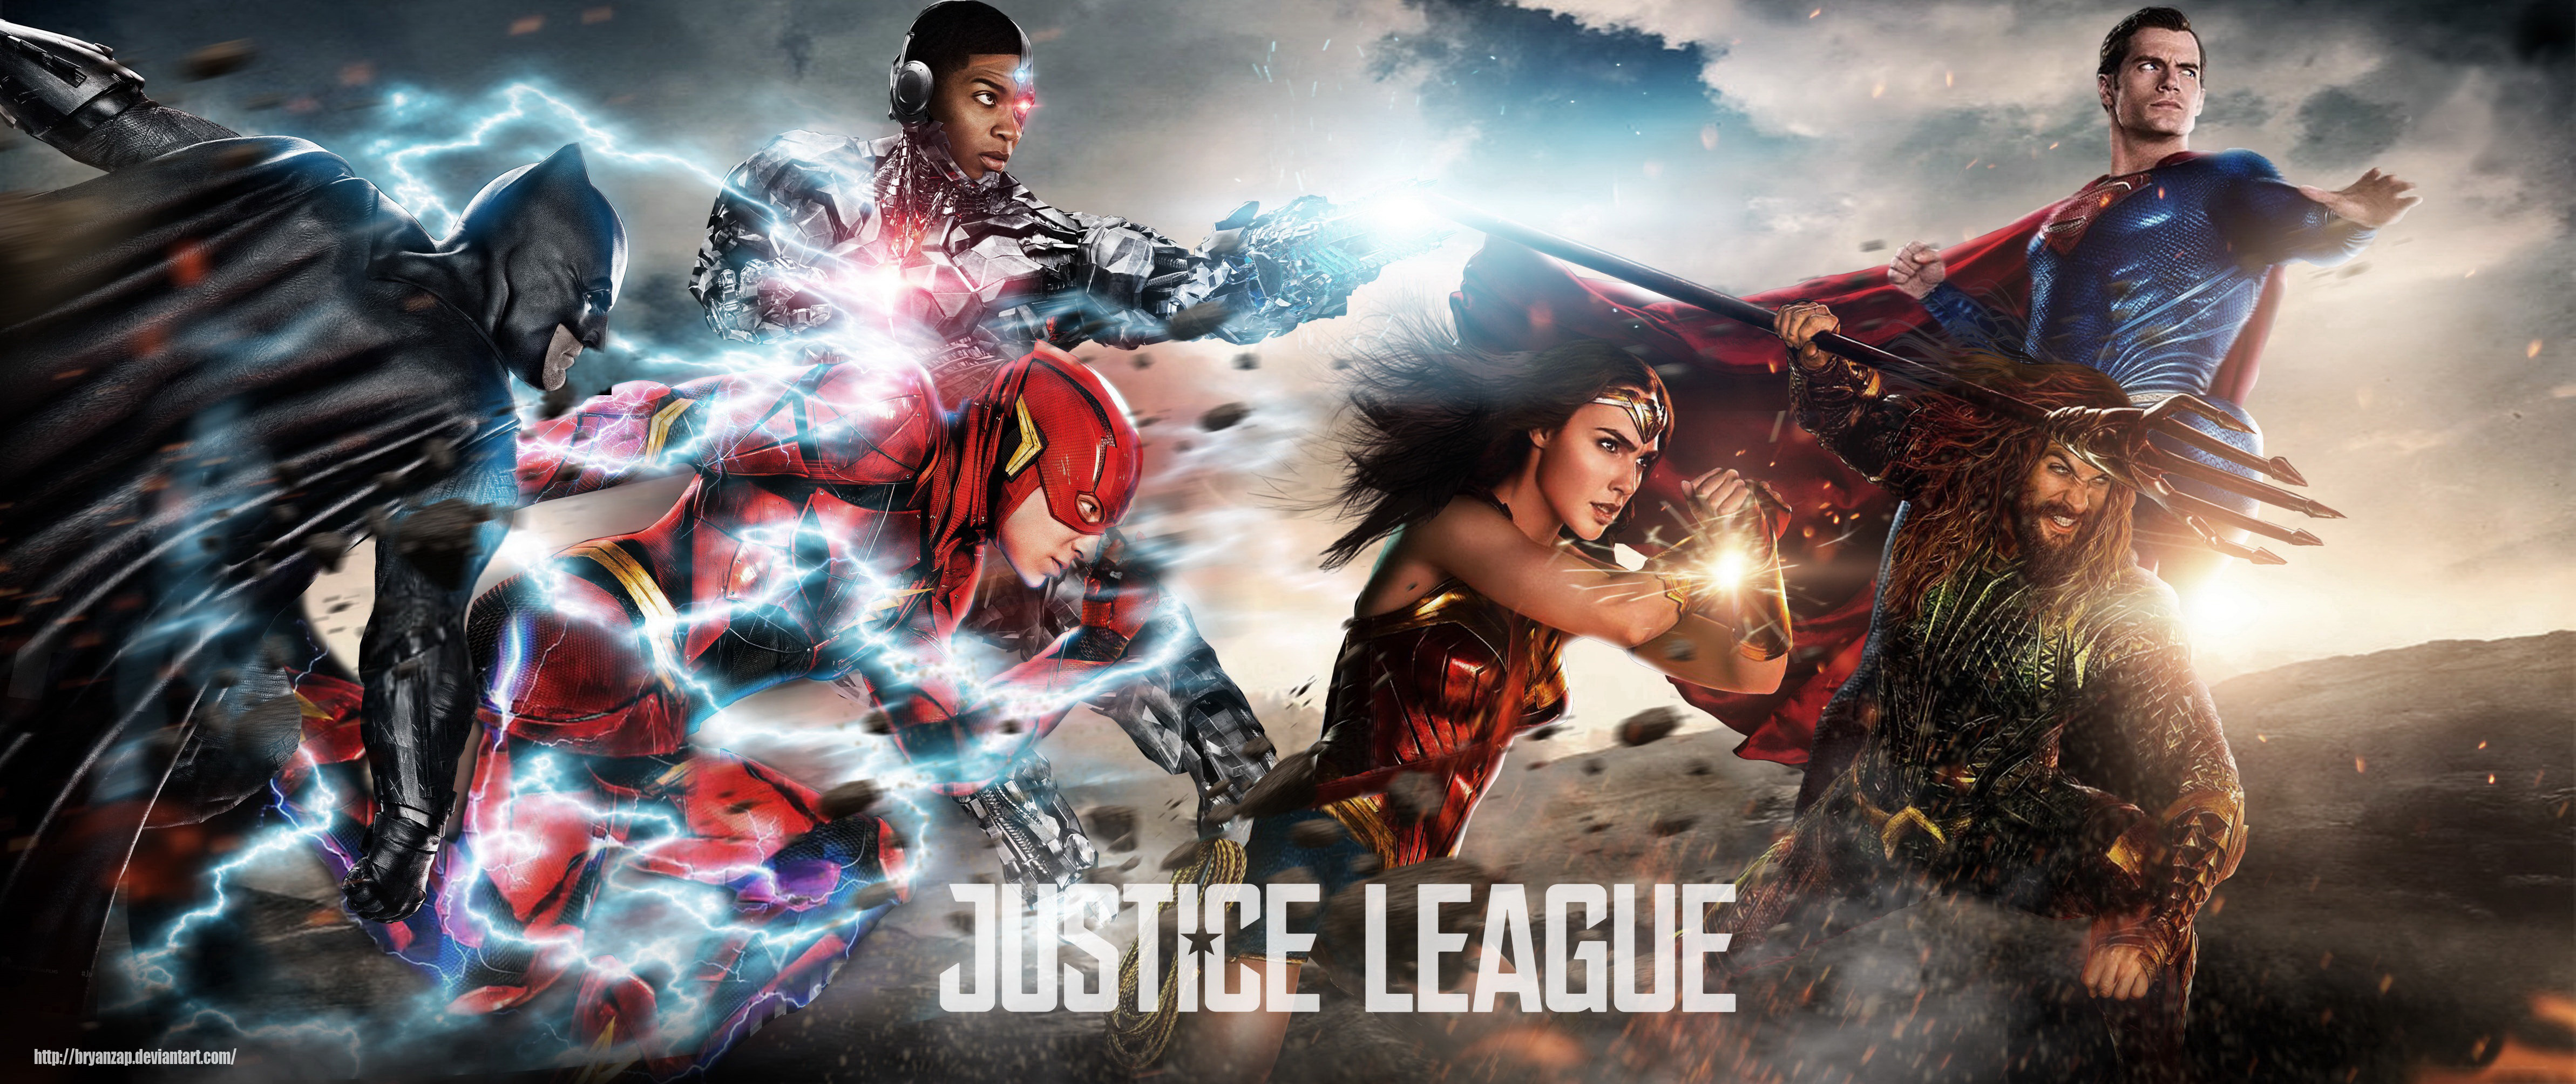 Justice League Hd Wallpaper Background Image 4772x2008 Id 1001732 Wallpaper Abyss